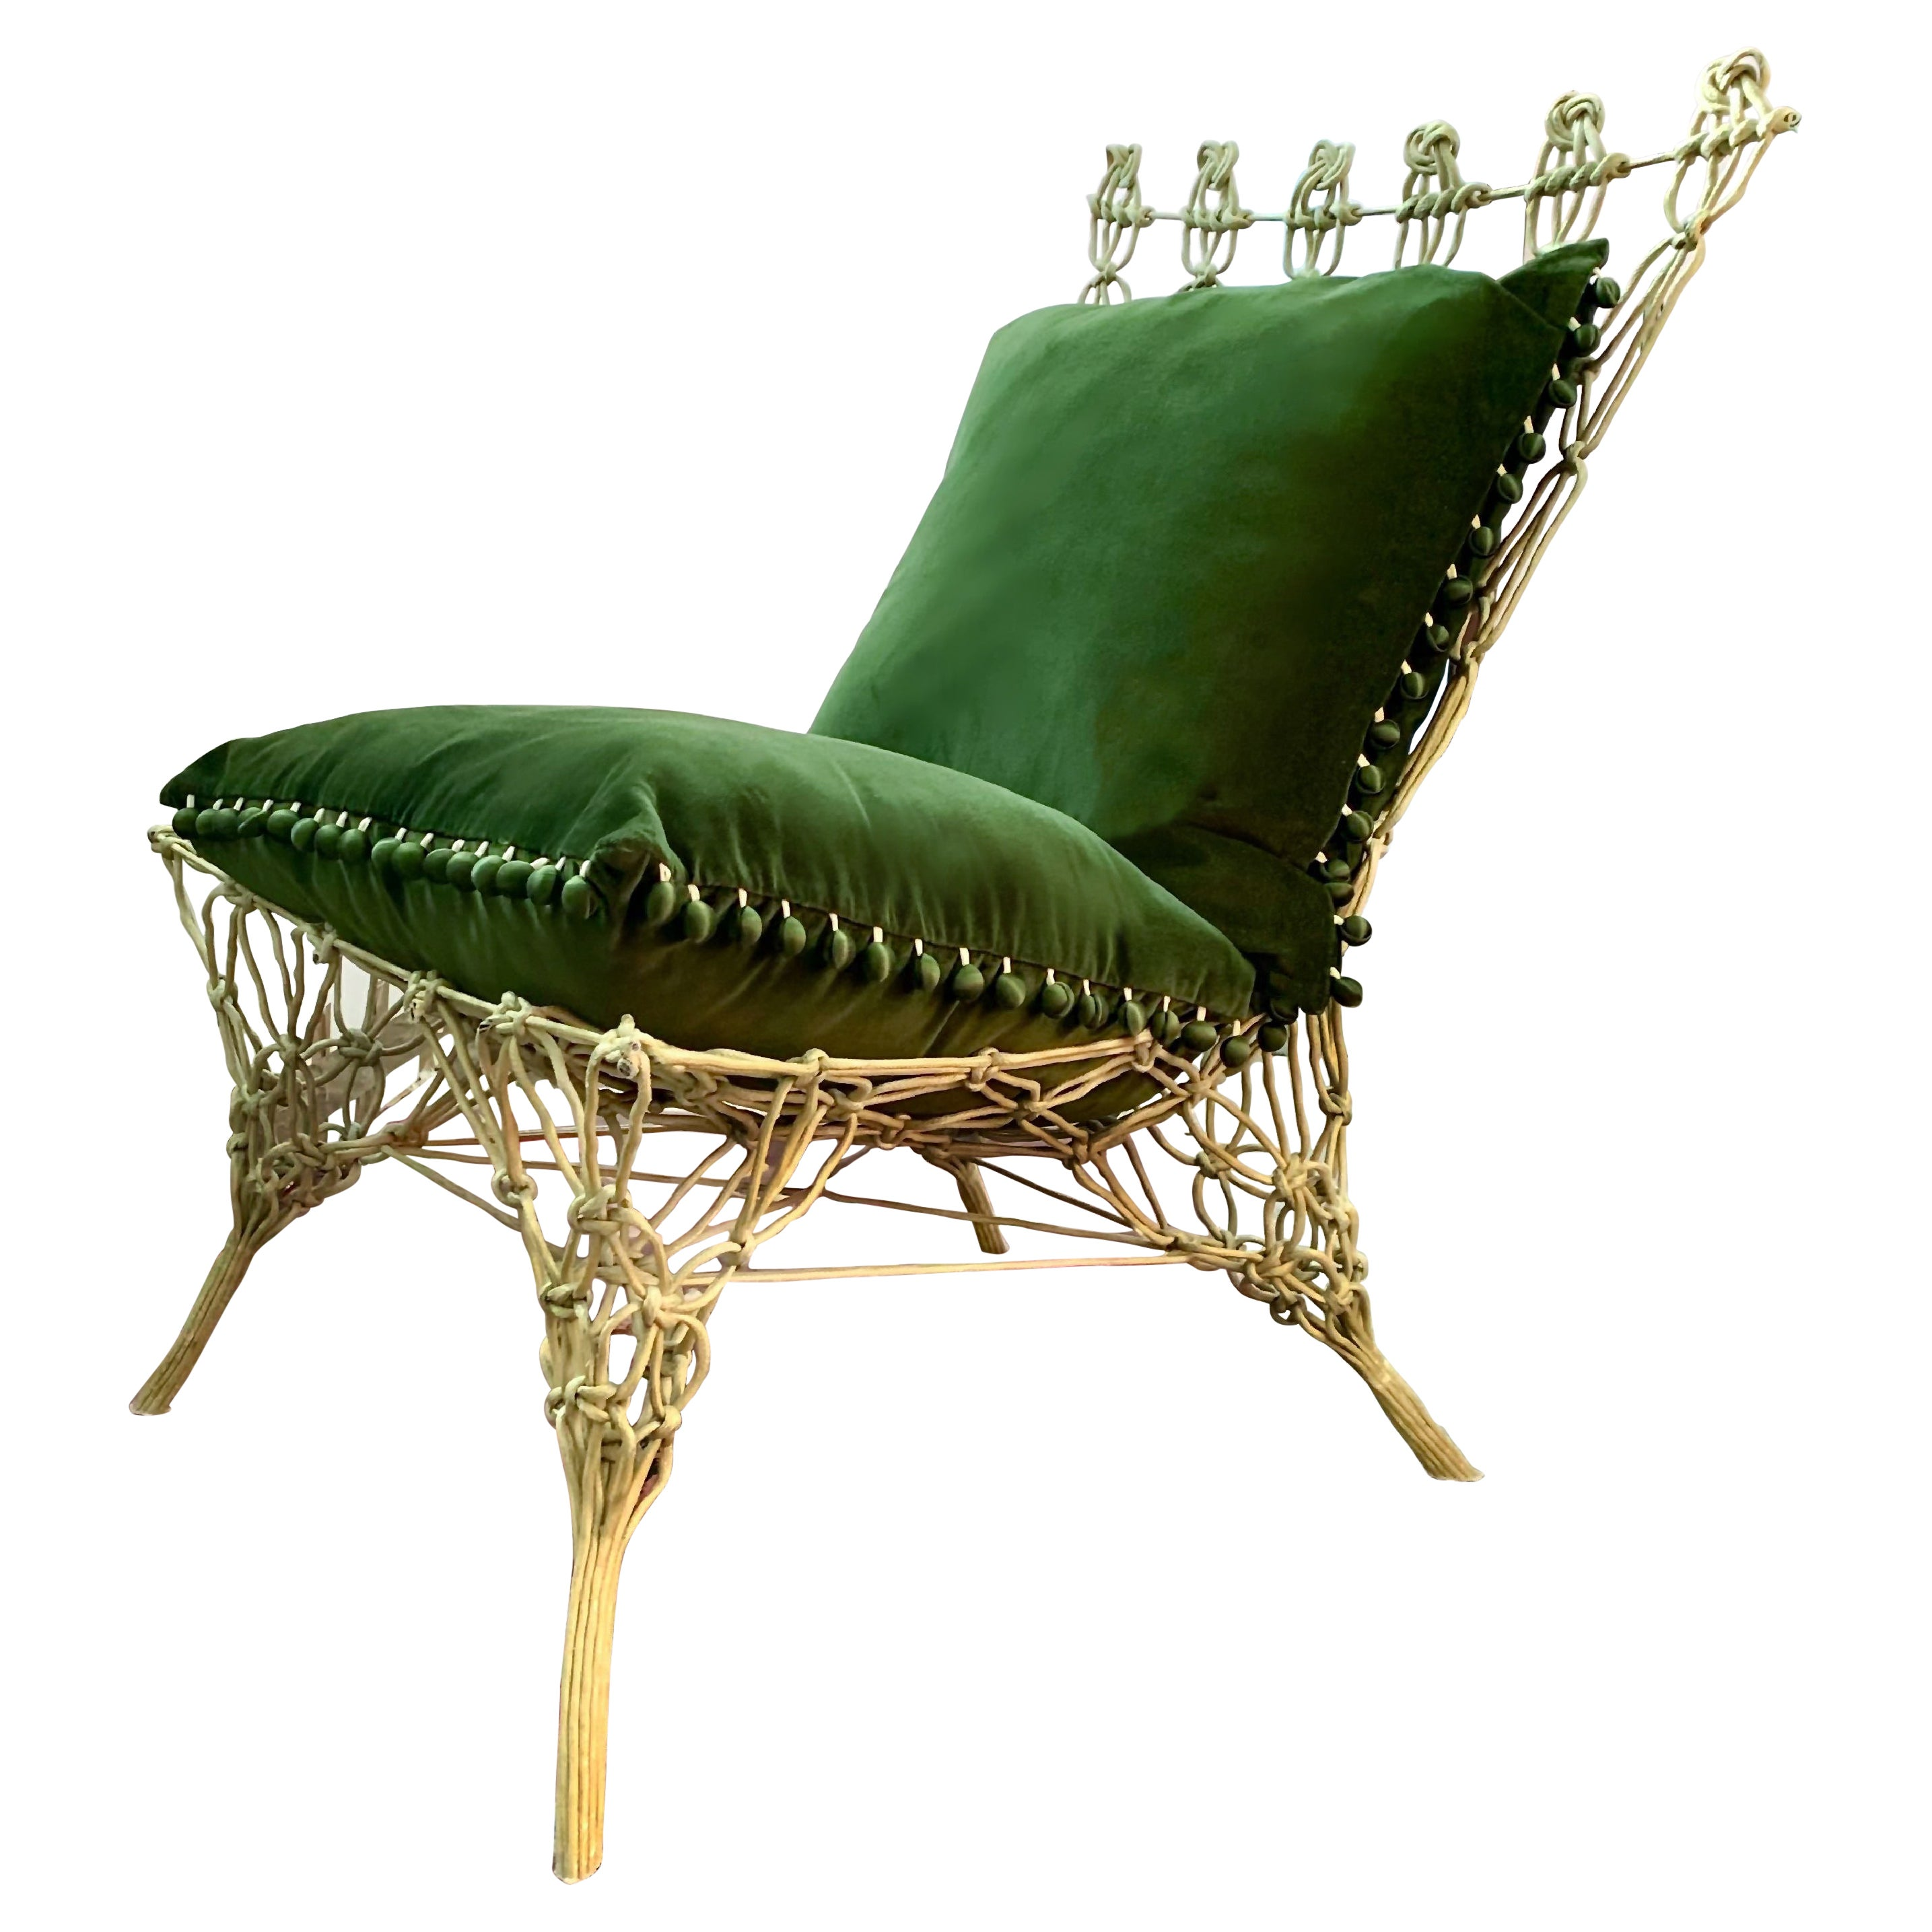 Marcel Wanders, Droog Design, Cappellini Knotted Chair, 1996, Netherlands, Italy